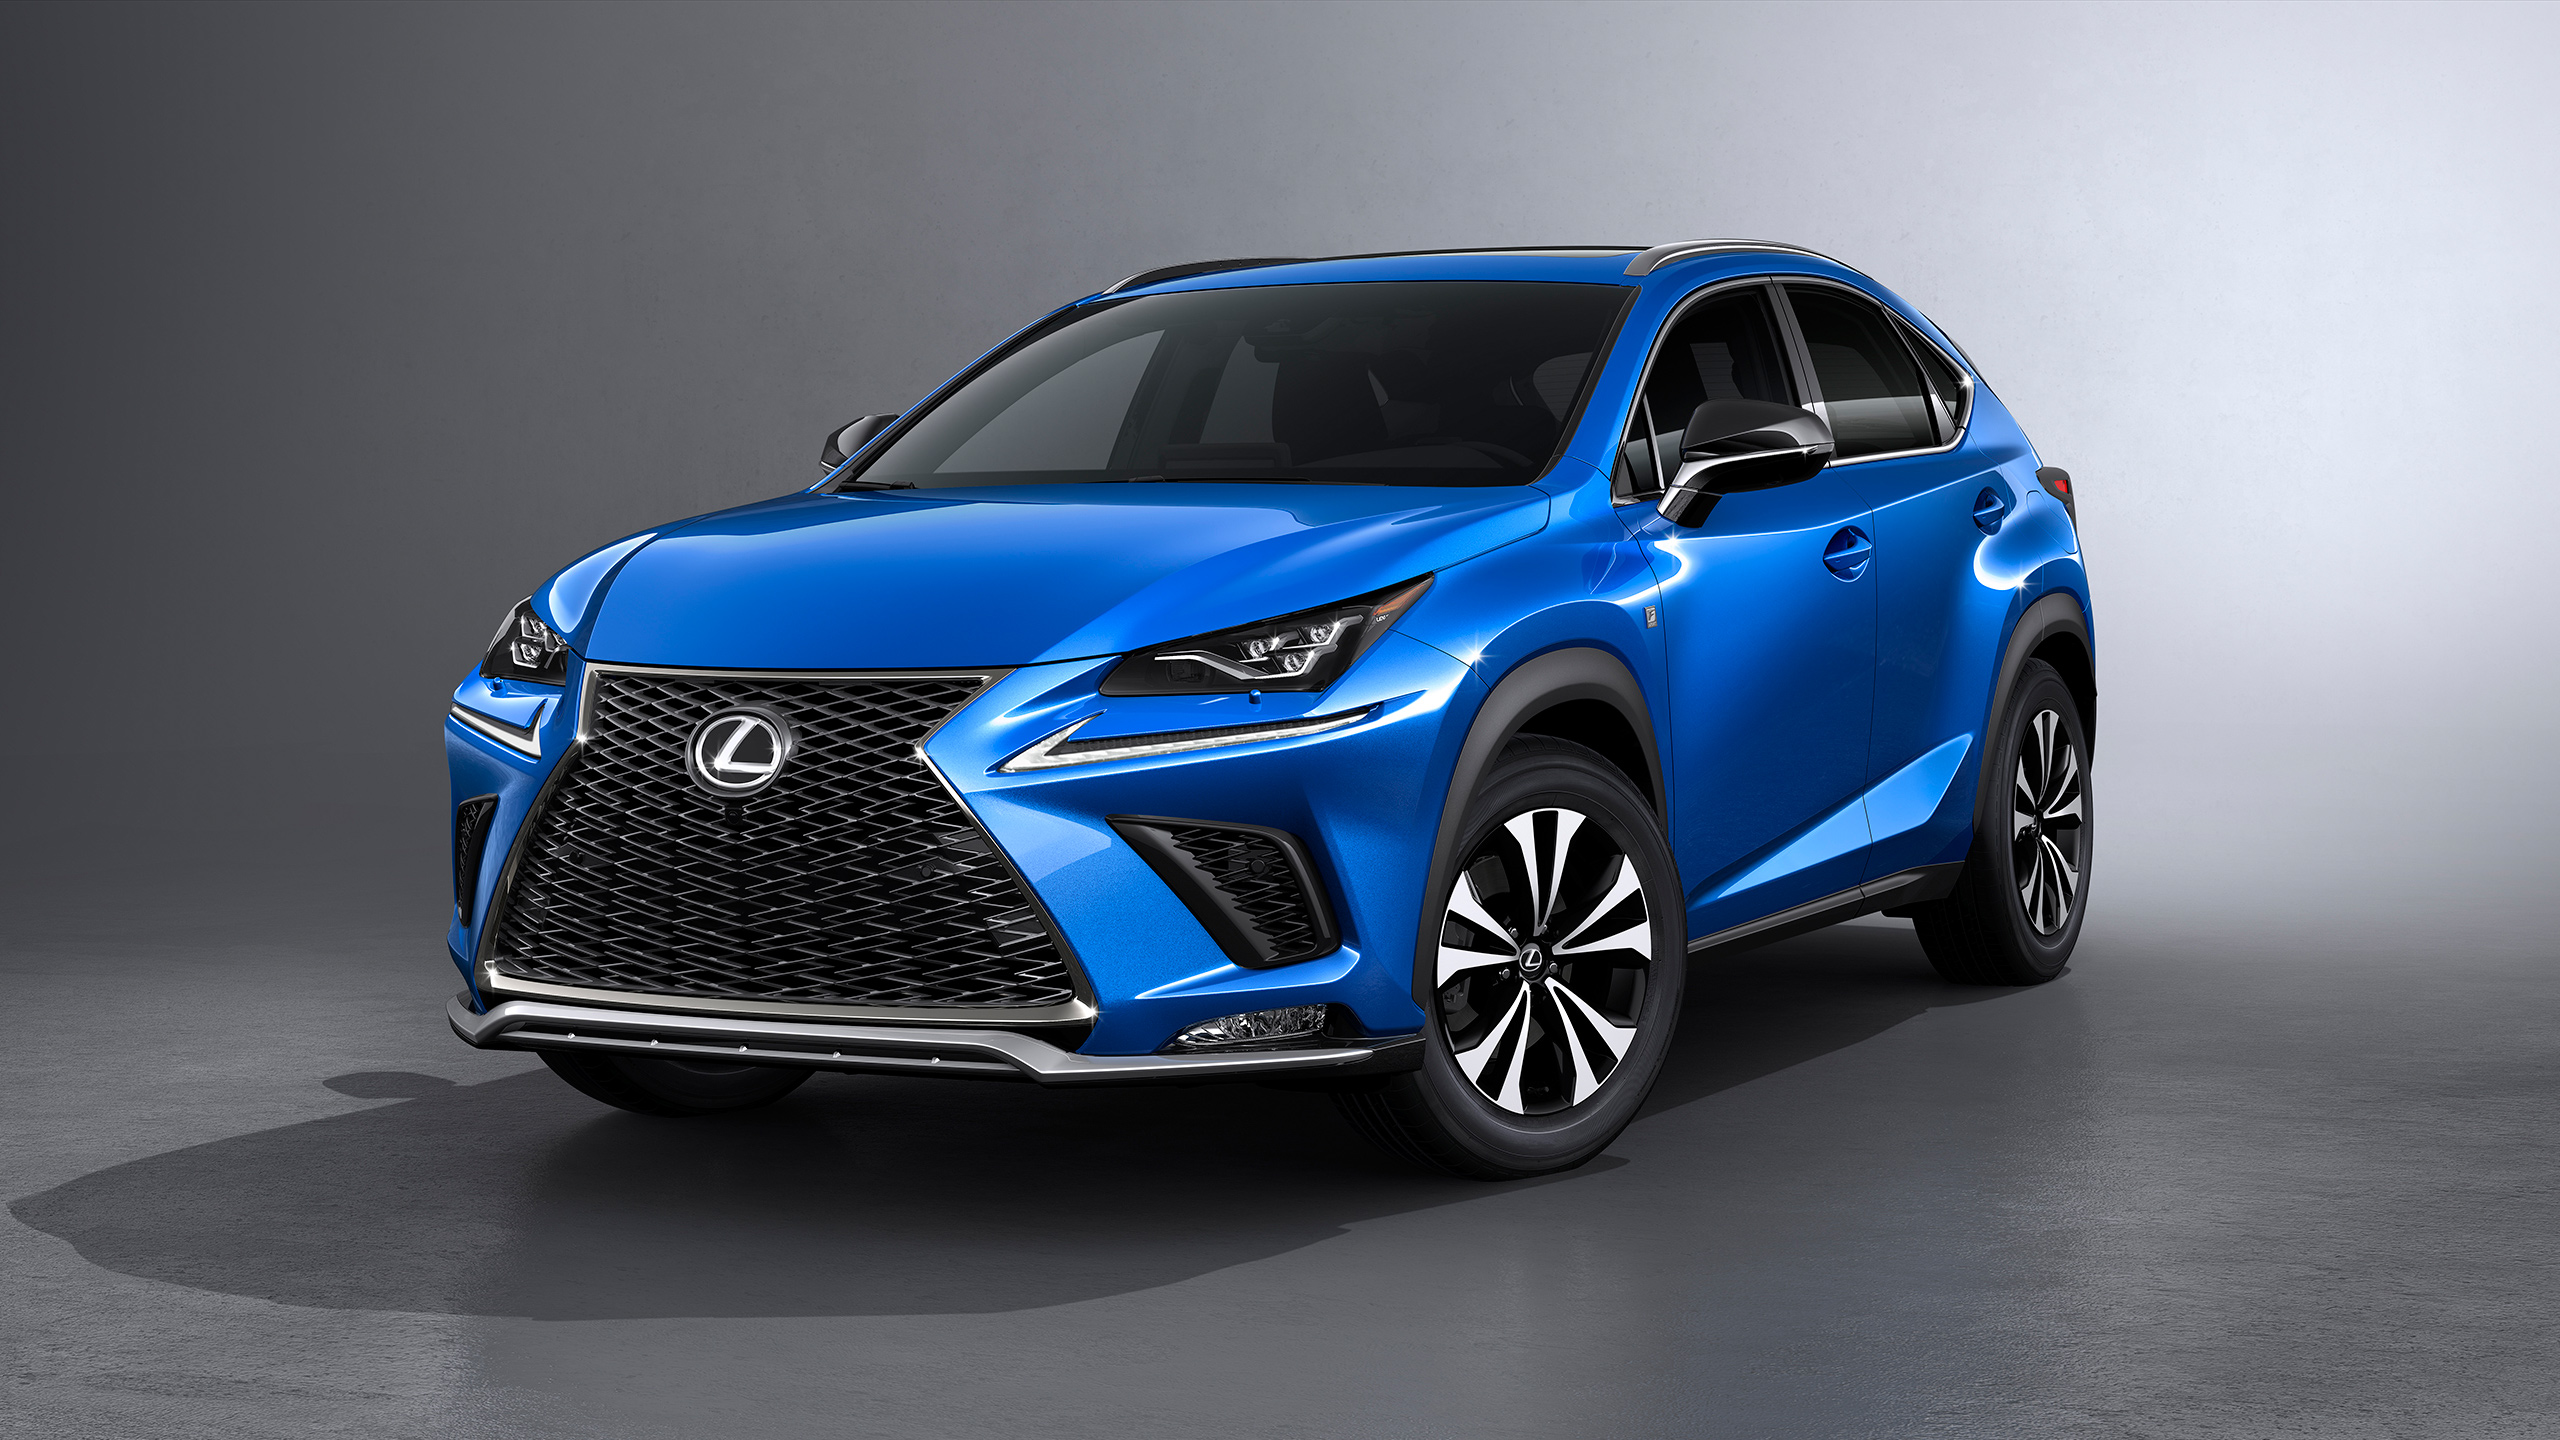 2017 Lexus Nx Luxury Crossover Wallpaper Hd Car Wallpapers